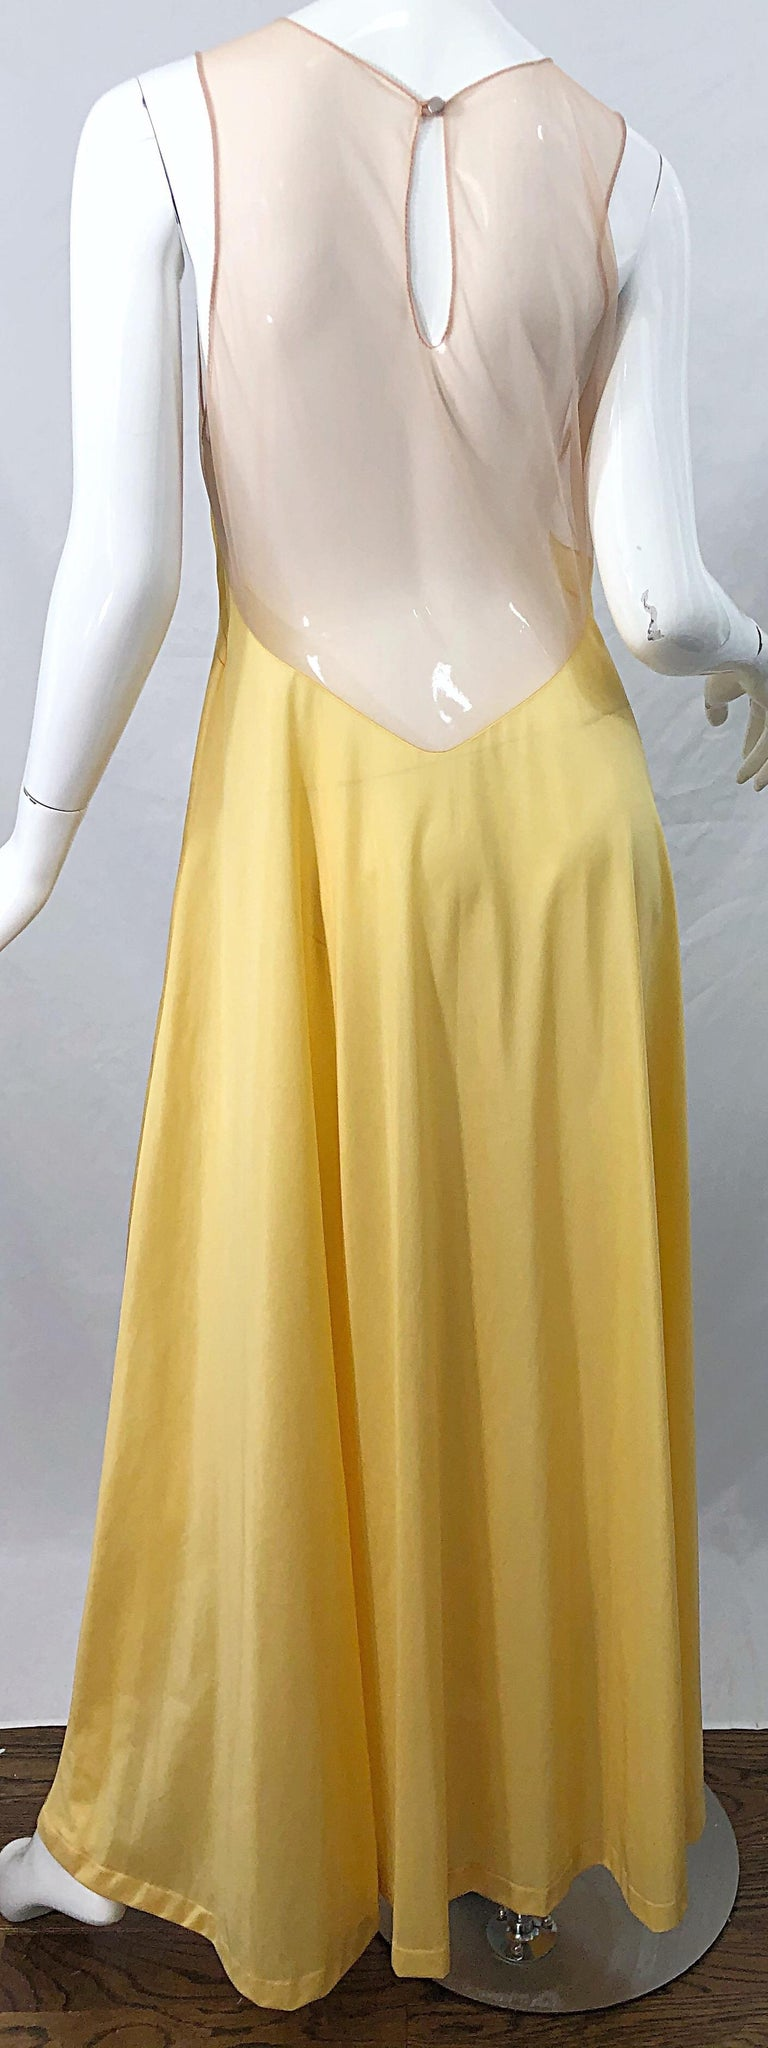 1970s Nude Sheer Caftan and Large Size Yellow Vintage 70s Nightgown Maxi Dress 10